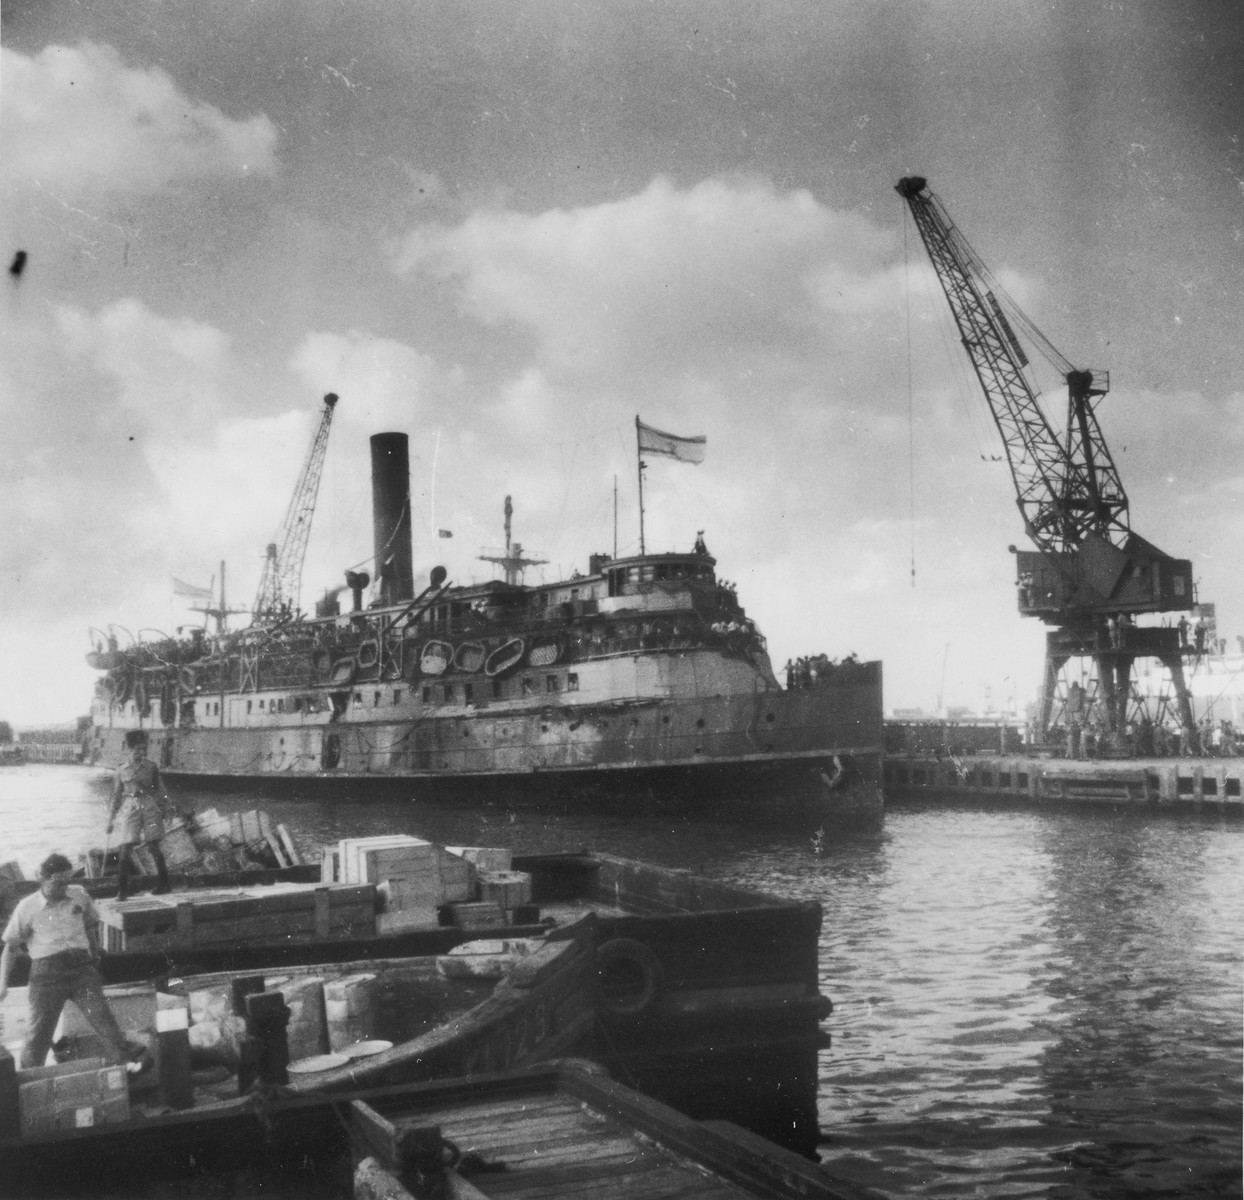 The battered illegal immigrant ship, Exodus 1947, berths in Haifa harbor.